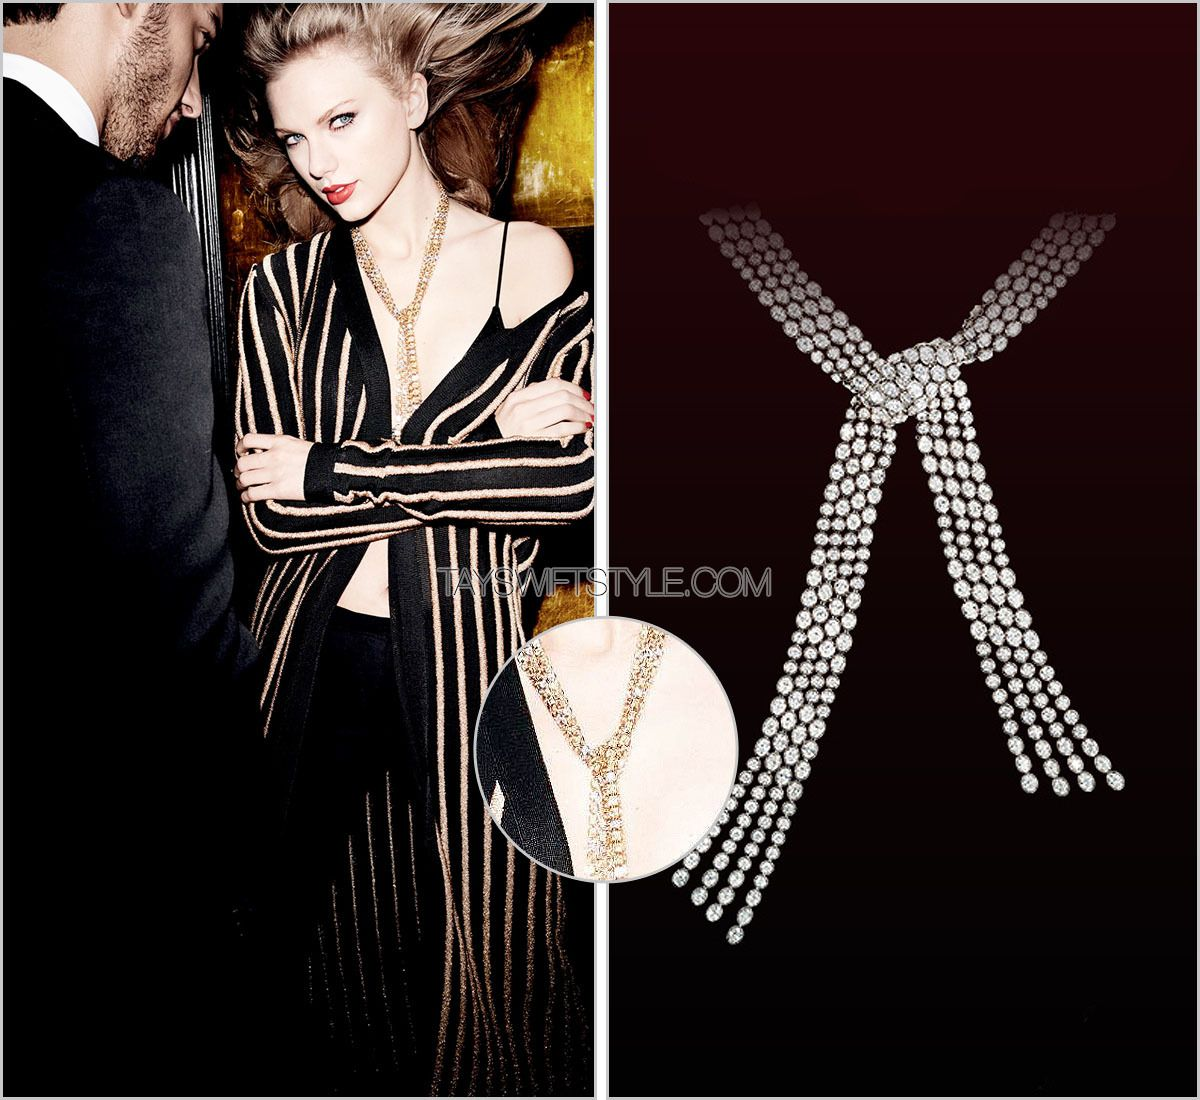 50cfe2a0 Vanity Fair | September 2015 Leviev 'White Diamond Scarf Necklace' - no  price listed Worn with: Balmain coat Check out everything from Taylor's  spread with ...